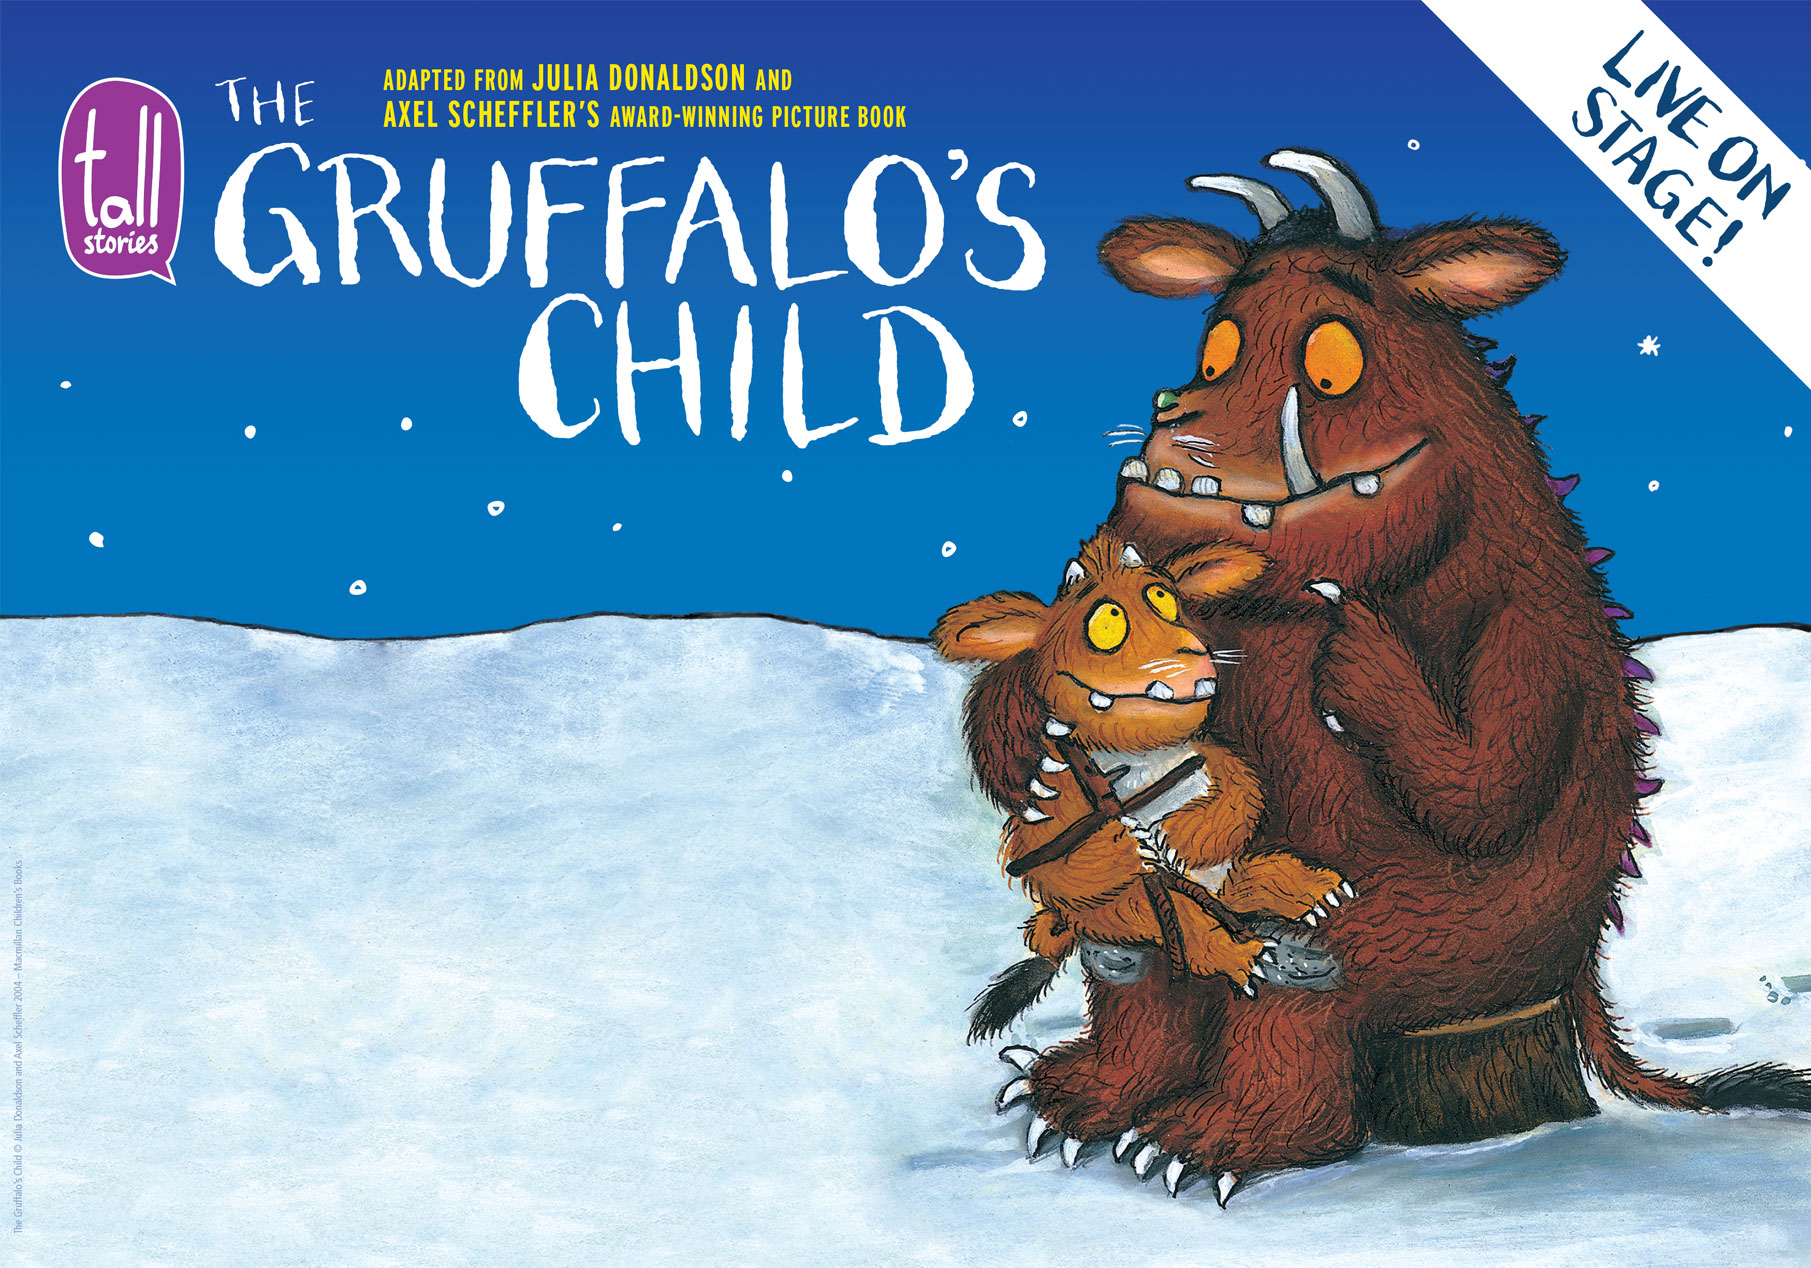 Julia Donaldson's Gruffalo's Child